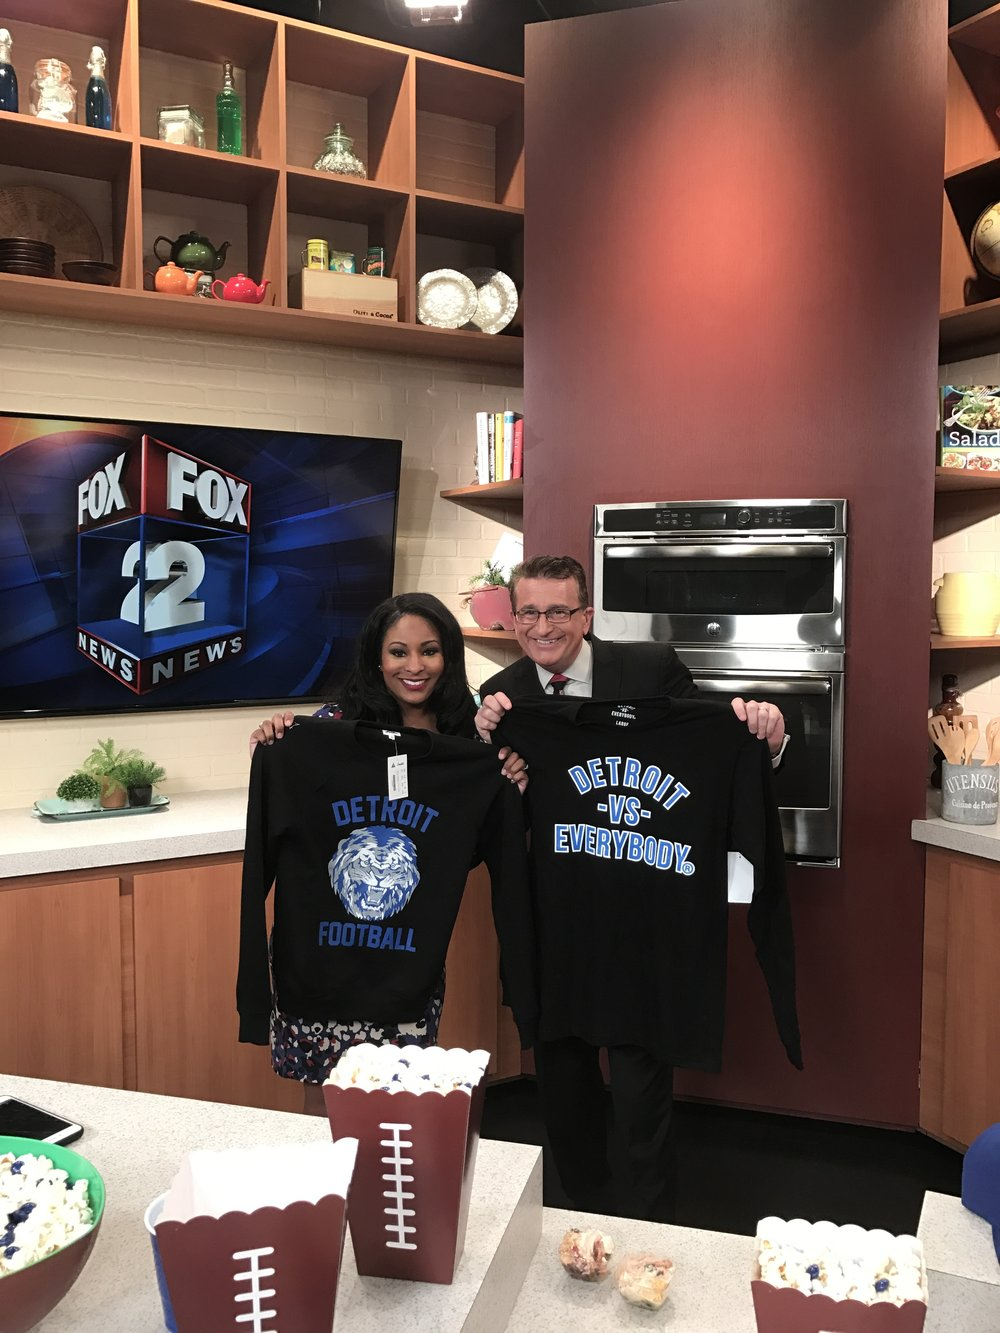 Fox 2 is certainly enjoying their gear from Detroit Vs Everybody and Simplified Clothing!!  They can't wait to sport it out to the next home game.